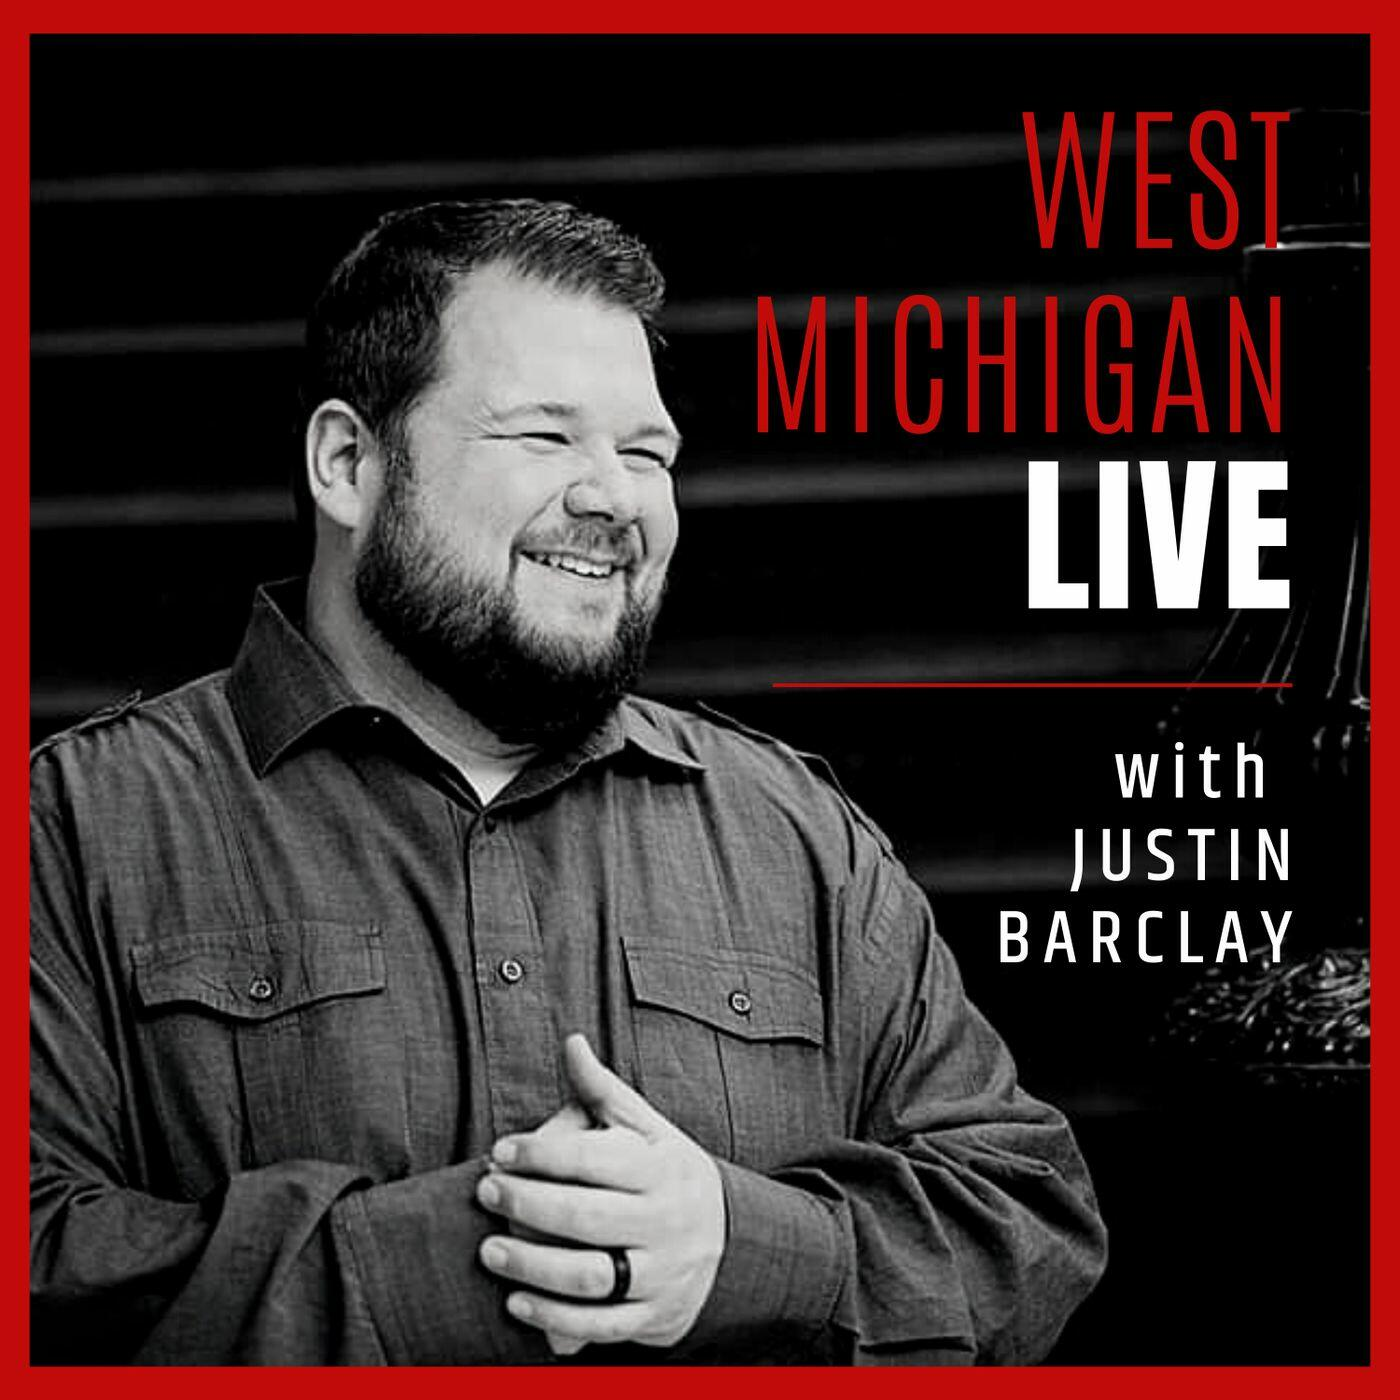 West Michigan Live with Justin Barclay